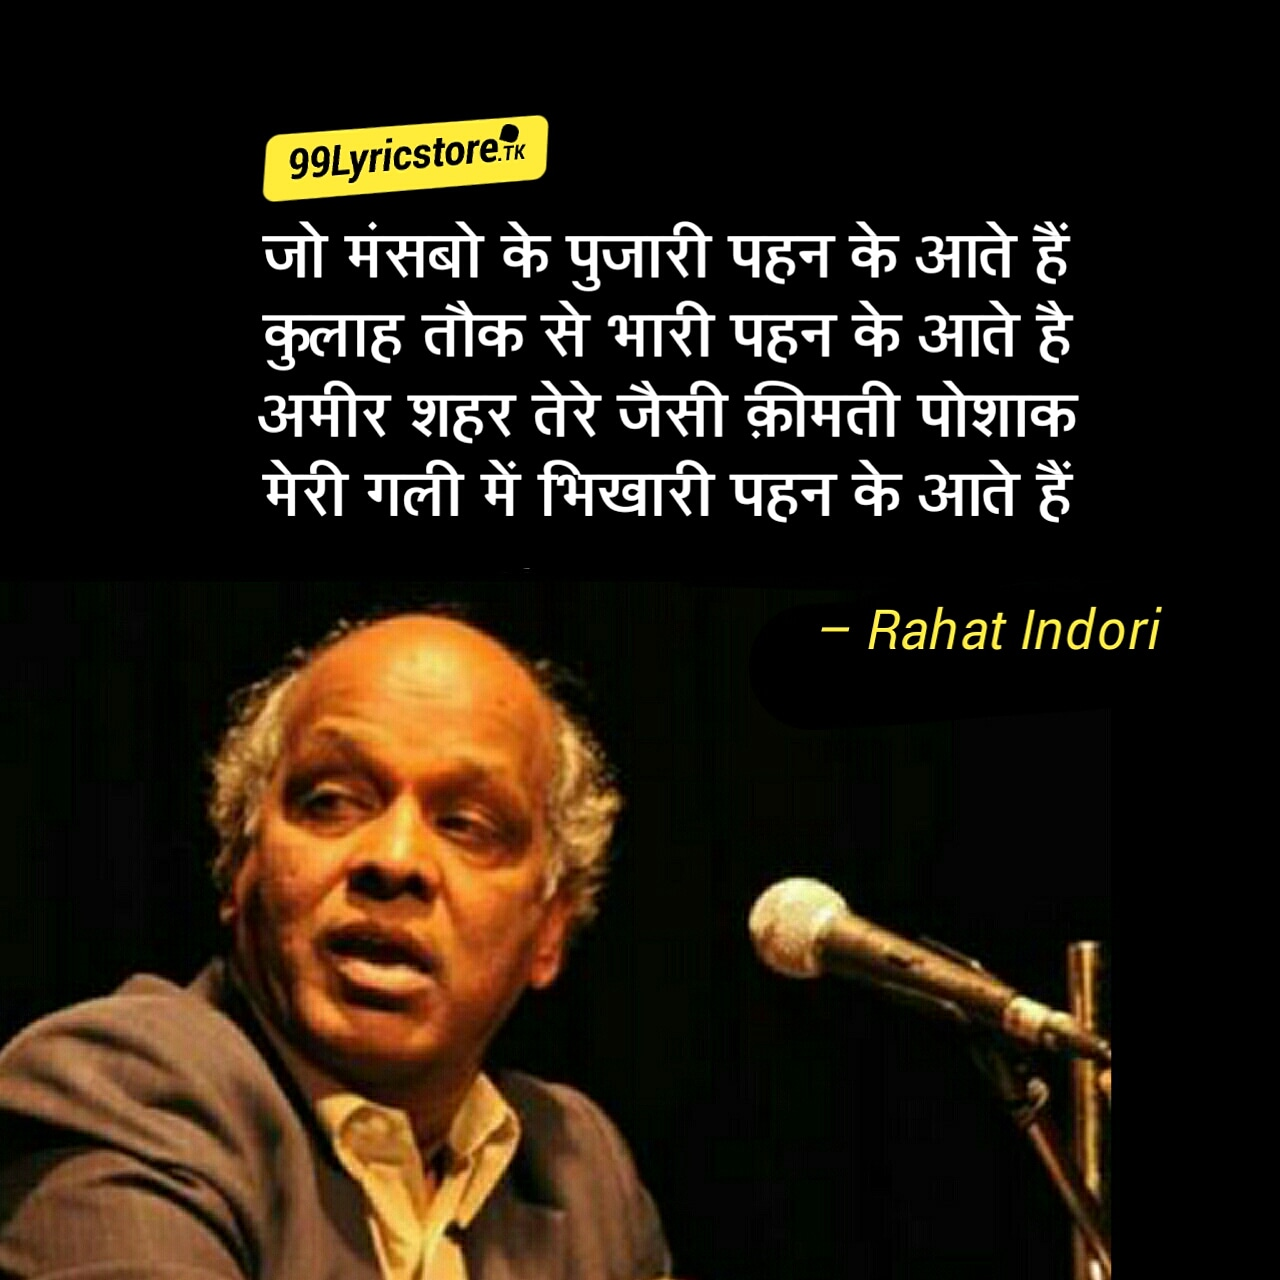 Jo Mansabo Ke Pujari Pahen Ke Aate Hai' written and performed by Rahat Indori. This poetry is best Ghazal and Shayari of Rahat Indori.